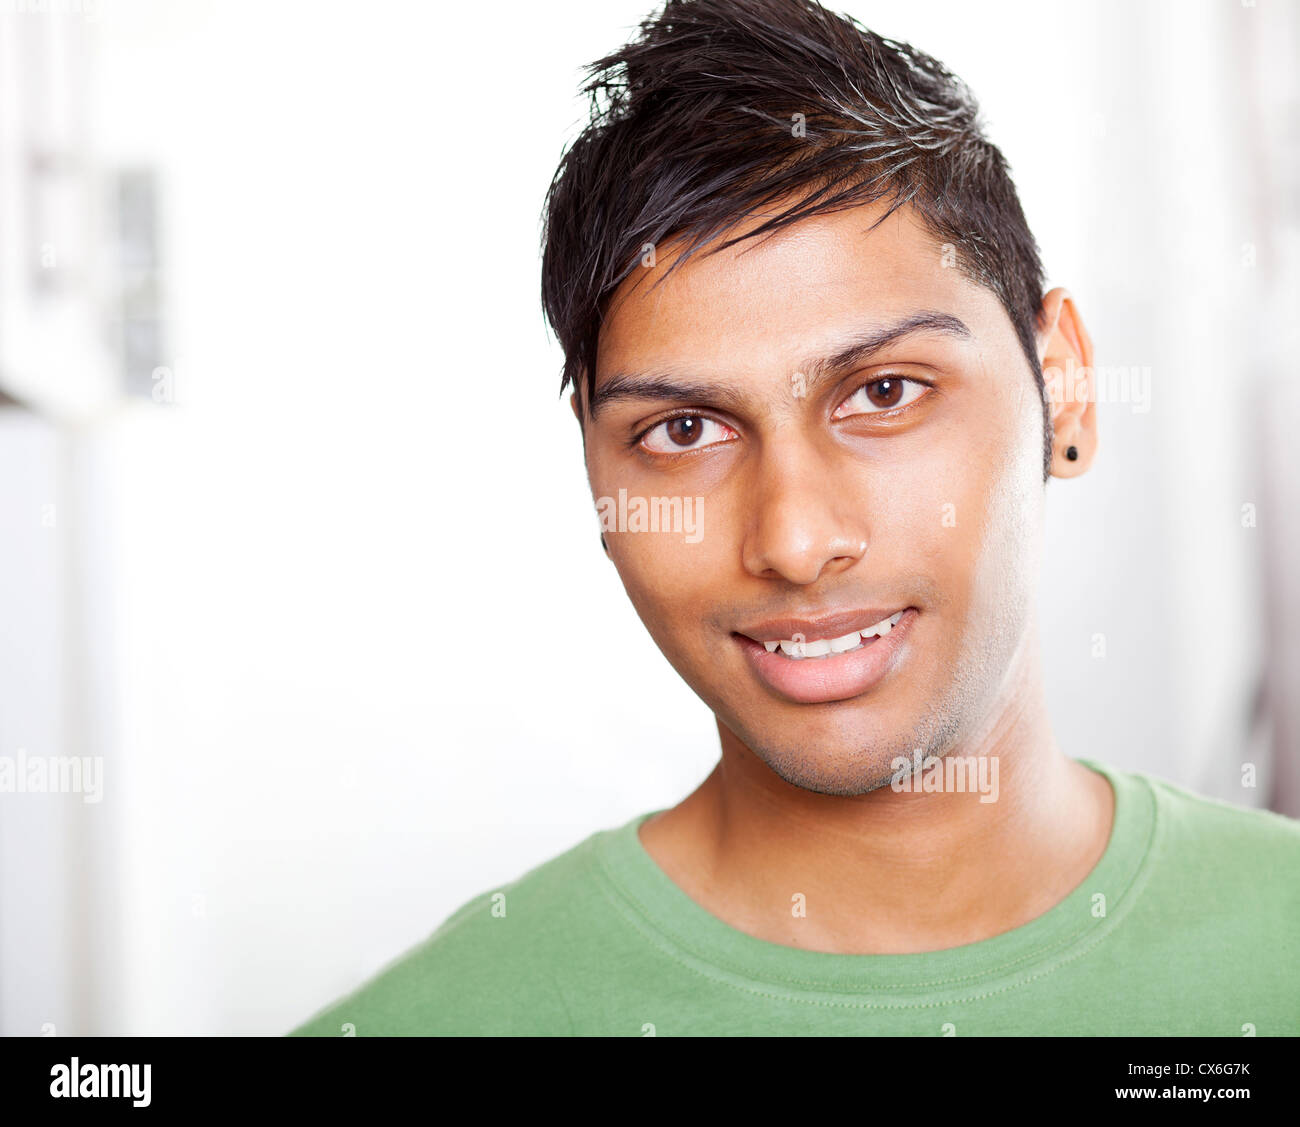 Handsome young indian man closeup portrait